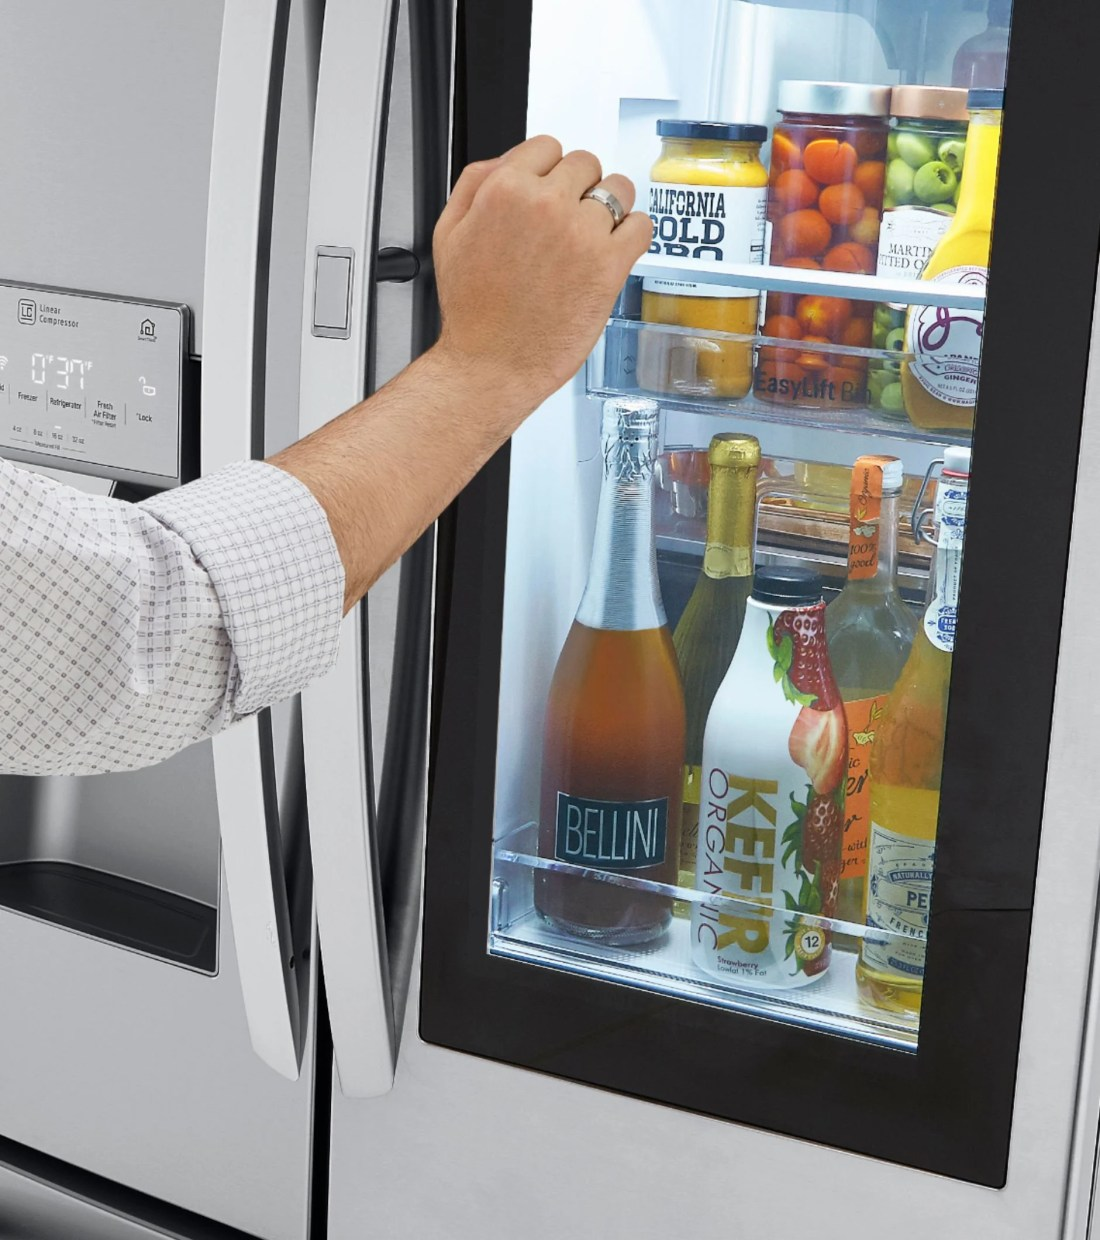 LG InstaView™ Door-in-Door® Refrigerator with Craft Ice™ InstaView Door-in-Door. LG's newest InstaView™ Door-in-Door® refrigerator with Craft Ice™ has everything you need to become the ultimate home entertainer. Purchase LG's newest refirdgerator in store or online at Best Buy.